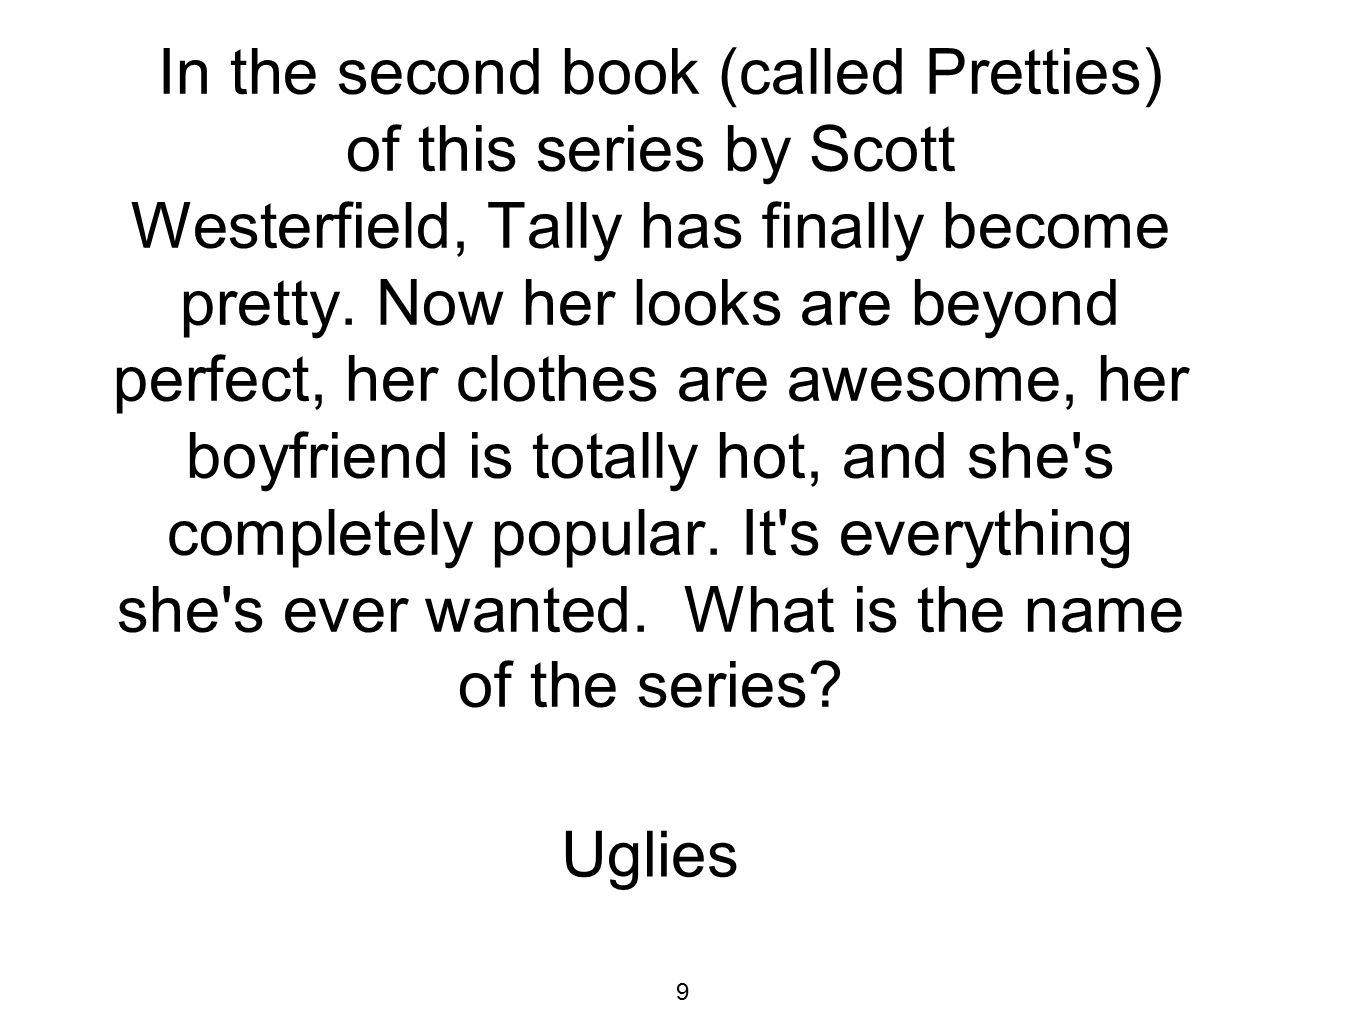 In the second book (called Pretties) of this series by Scott Westerfield, Tally has finally become pretty.